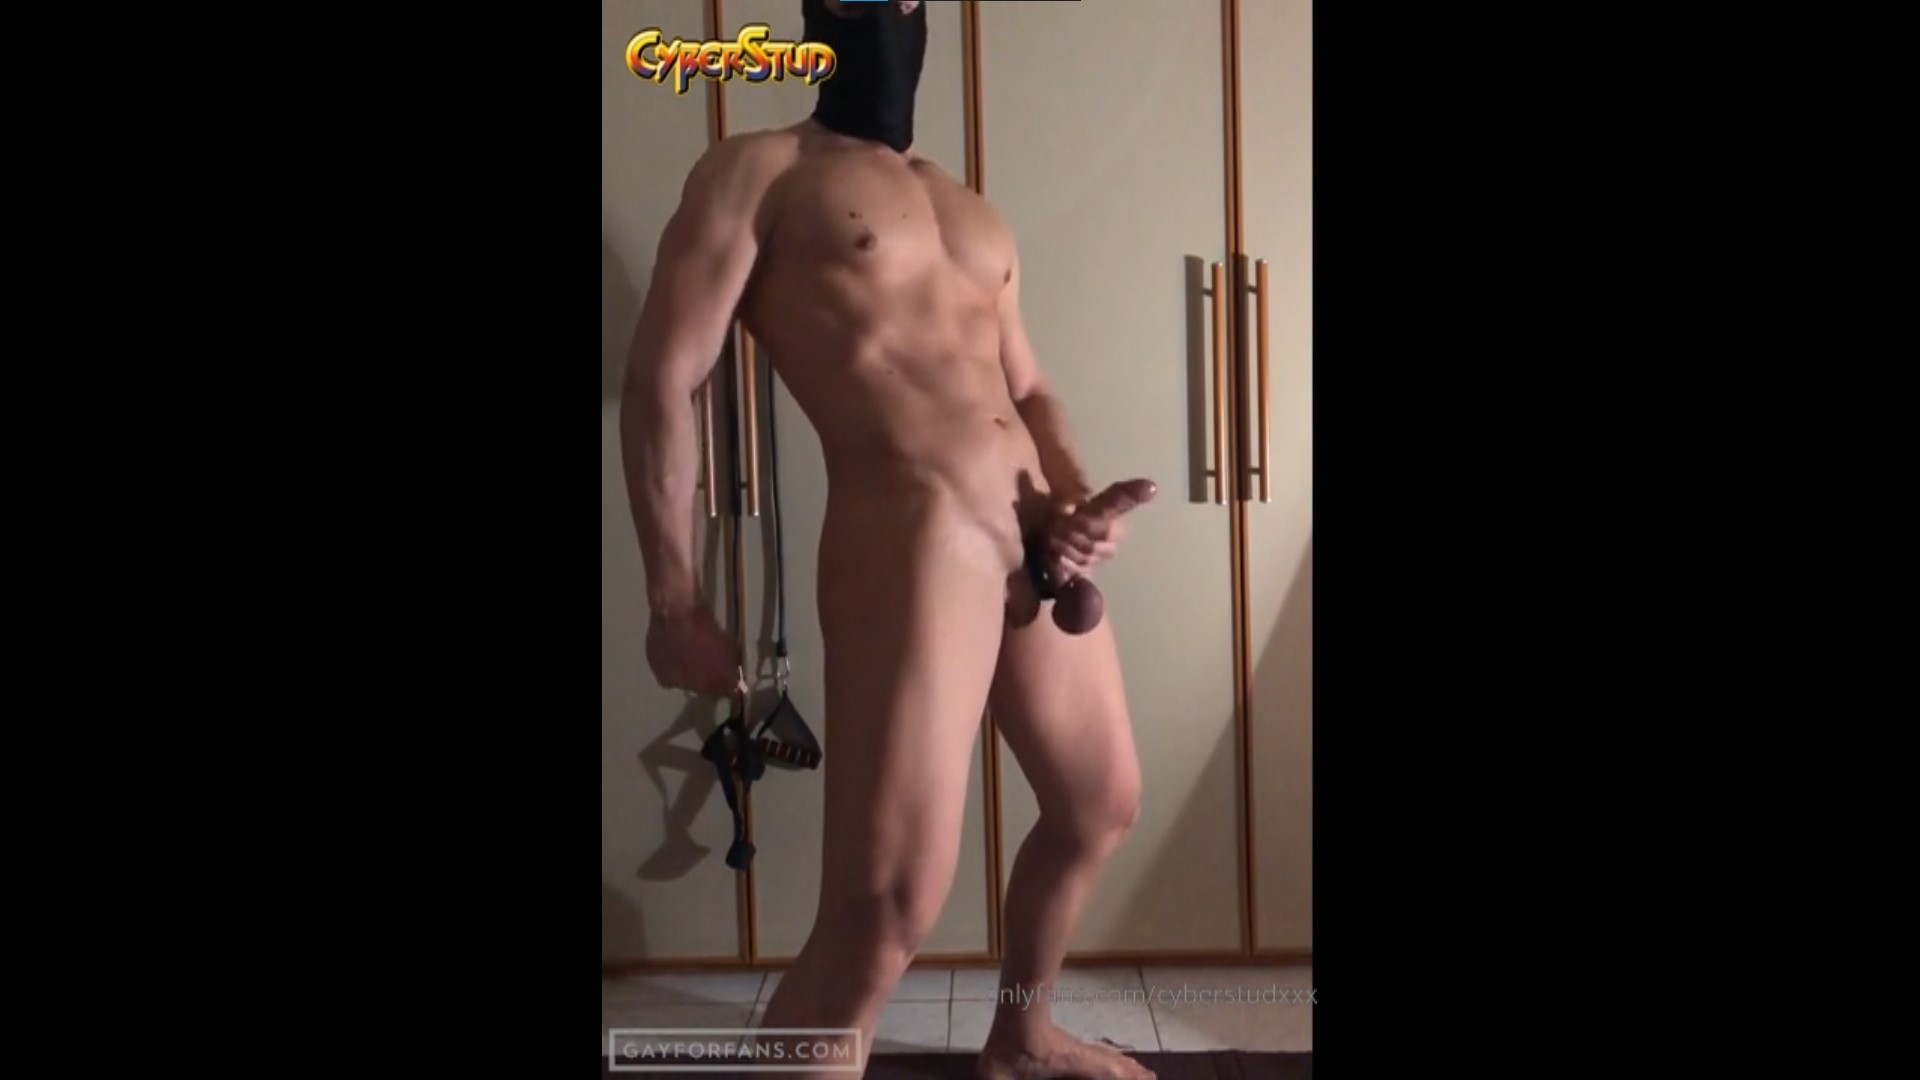 Playing with my ass and jerking off - CyberStudXXX